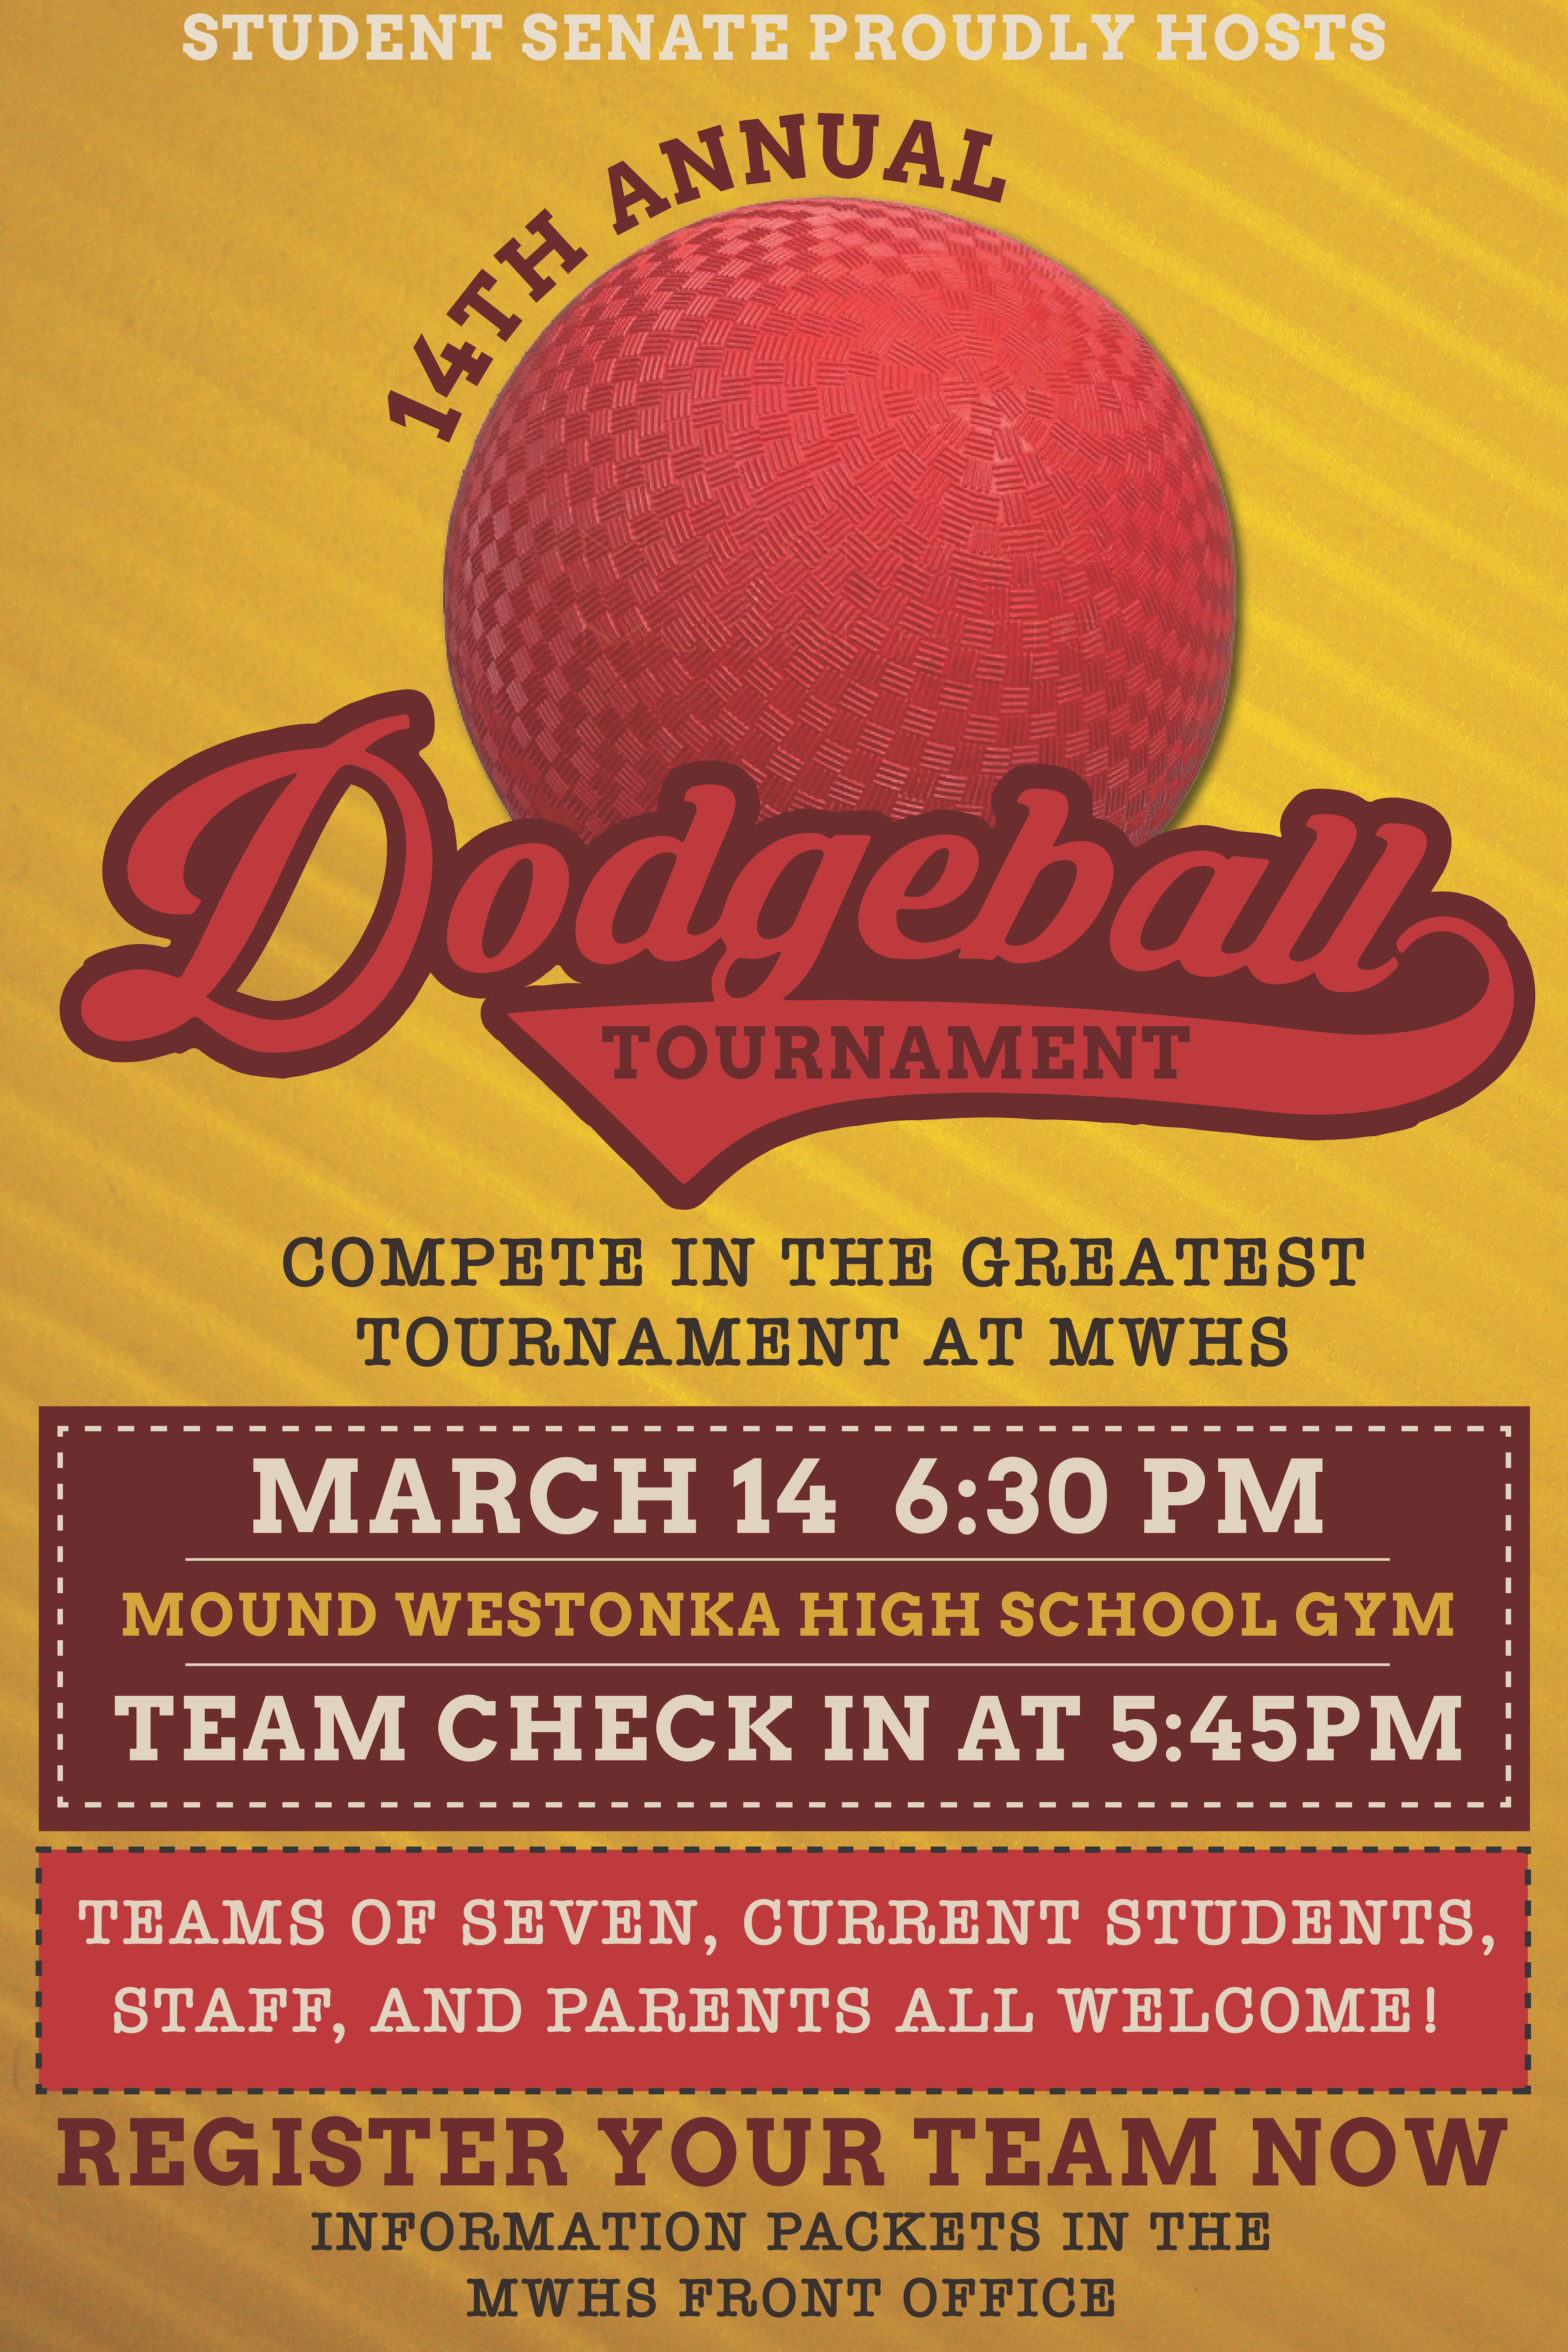 Student Senate to Host 14th Annual Dodgeball Tournament